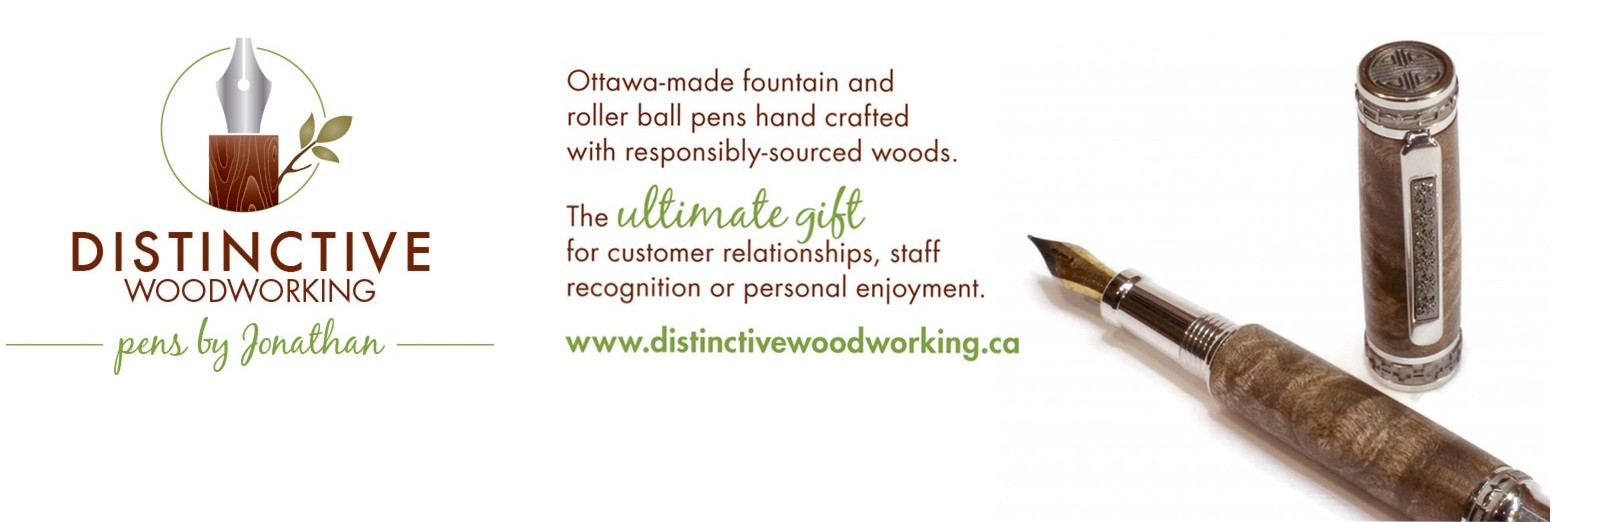 Distinctive Woodworking